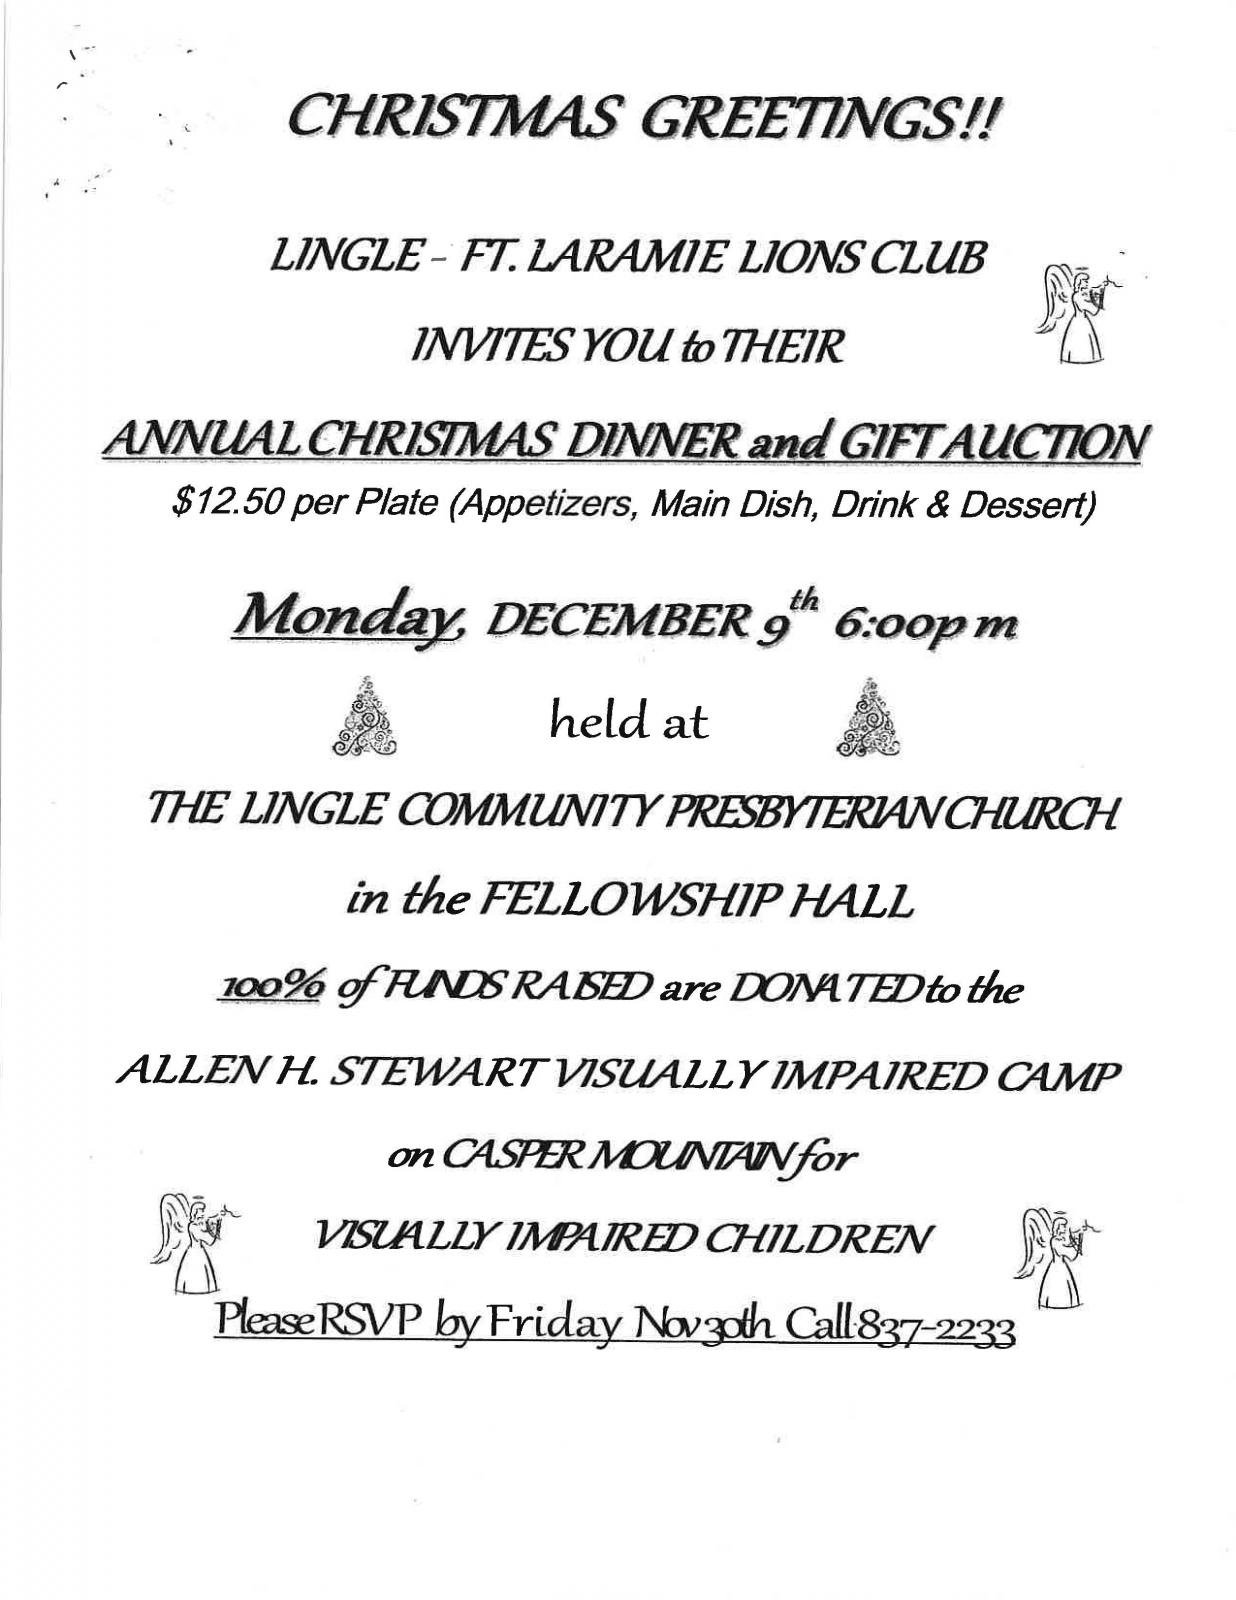 Annual Christmas Dinner and Gift Auction Photo